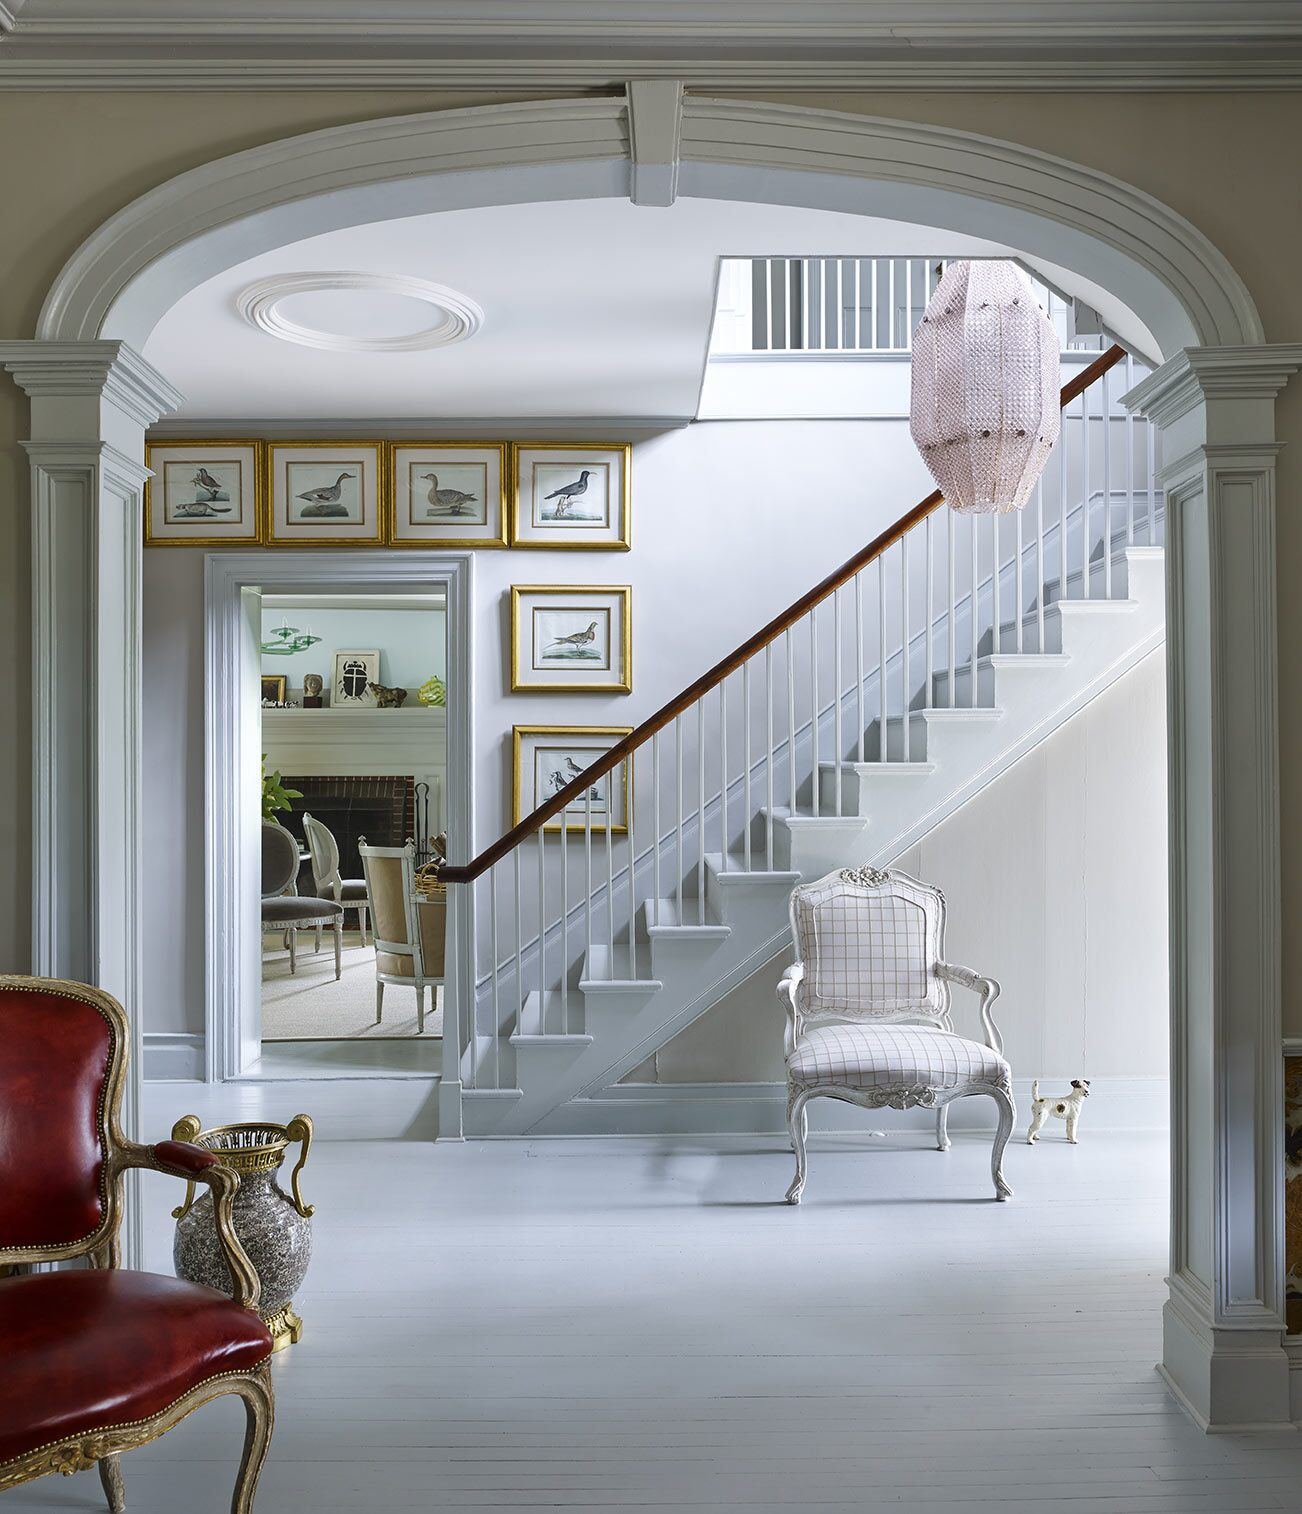 Elegant staircase viewed through ornamental arch with framed walls prints at base of stairs.